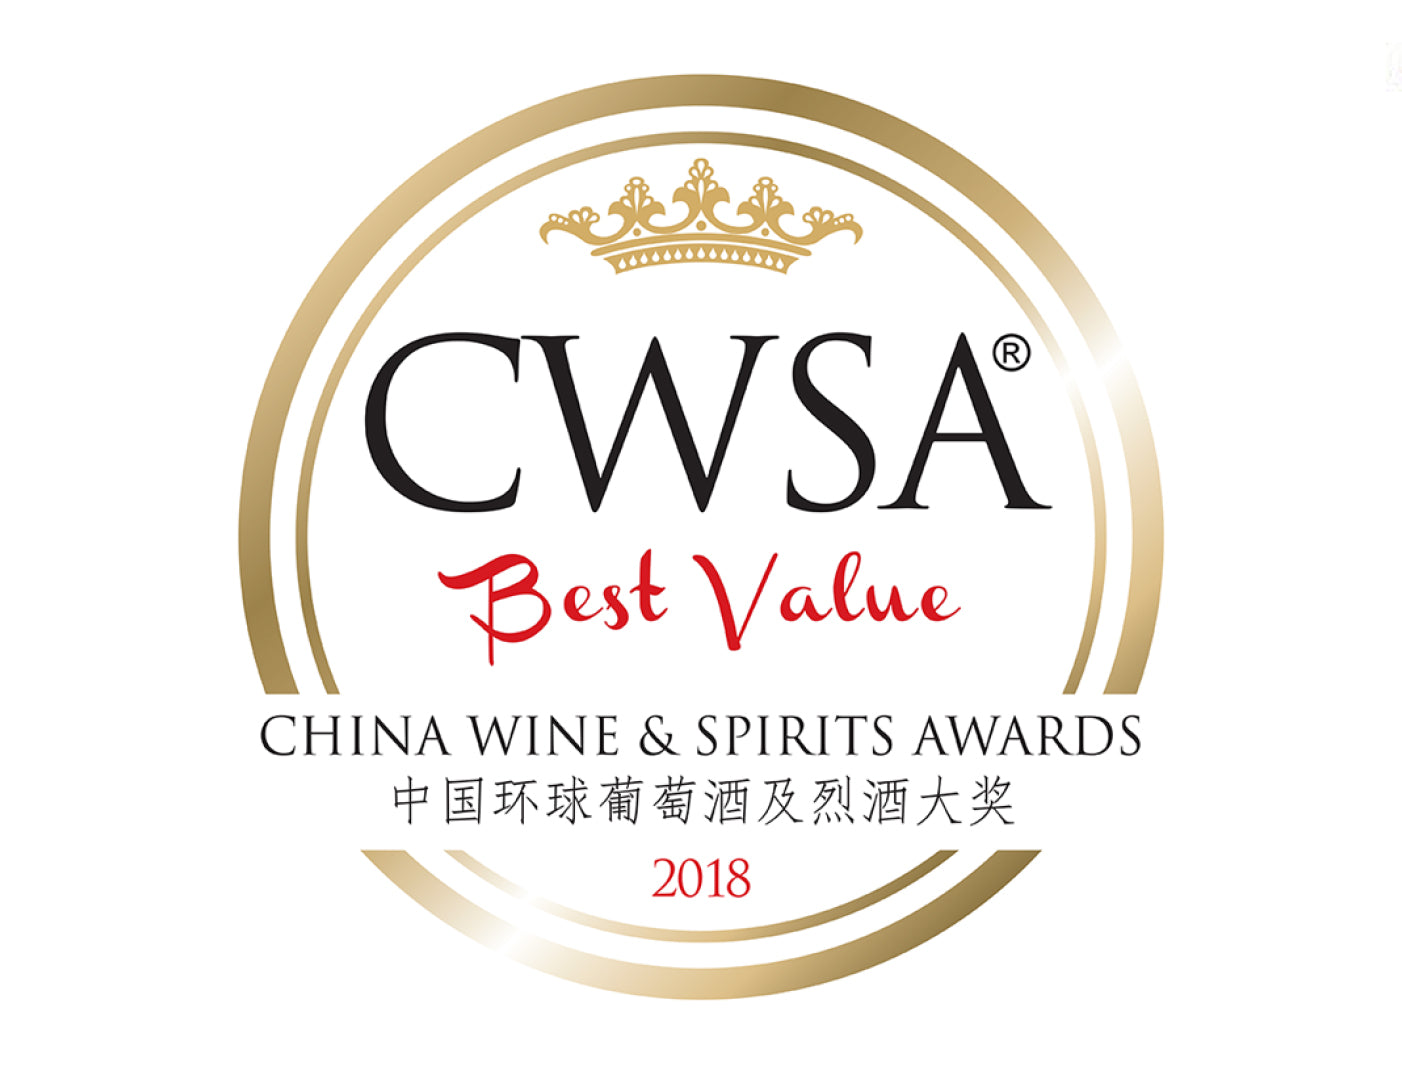 Deep Woods Awarded 3 Gold Medals at China Wine & Spirit Awards